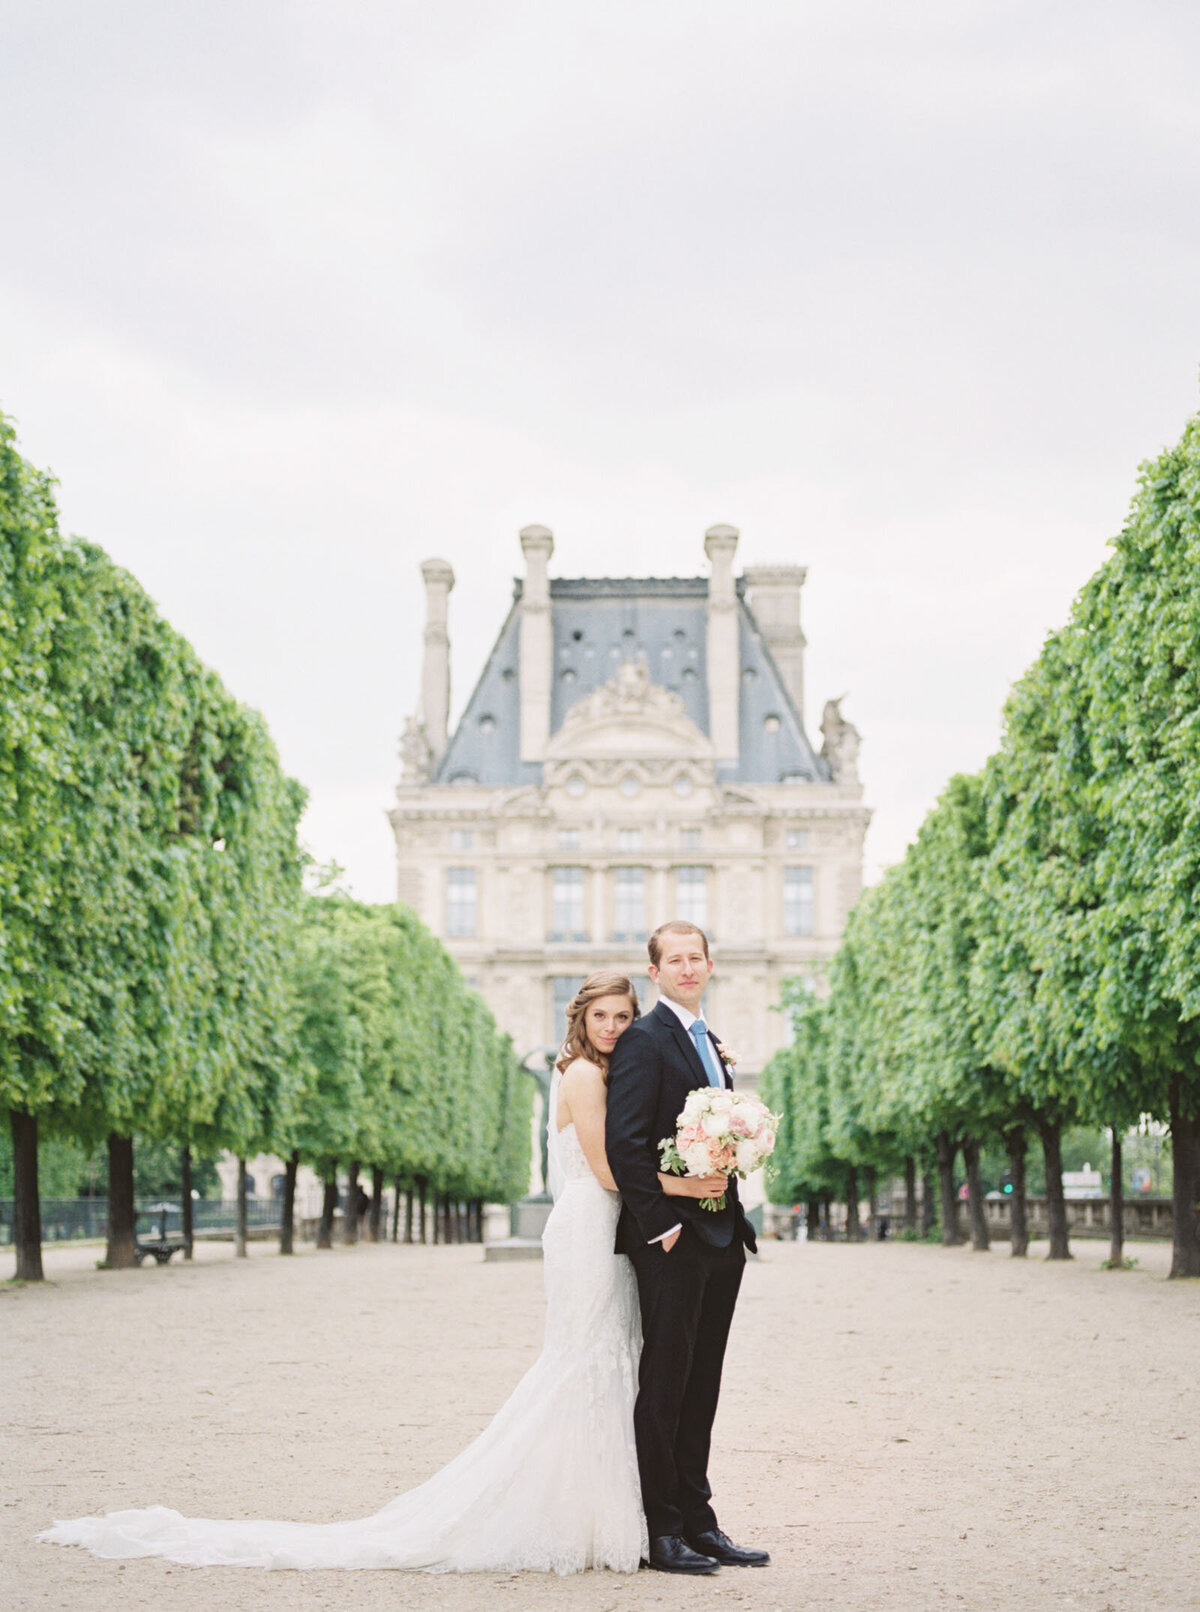 marcelaploskerphotography-paris_wedding-8